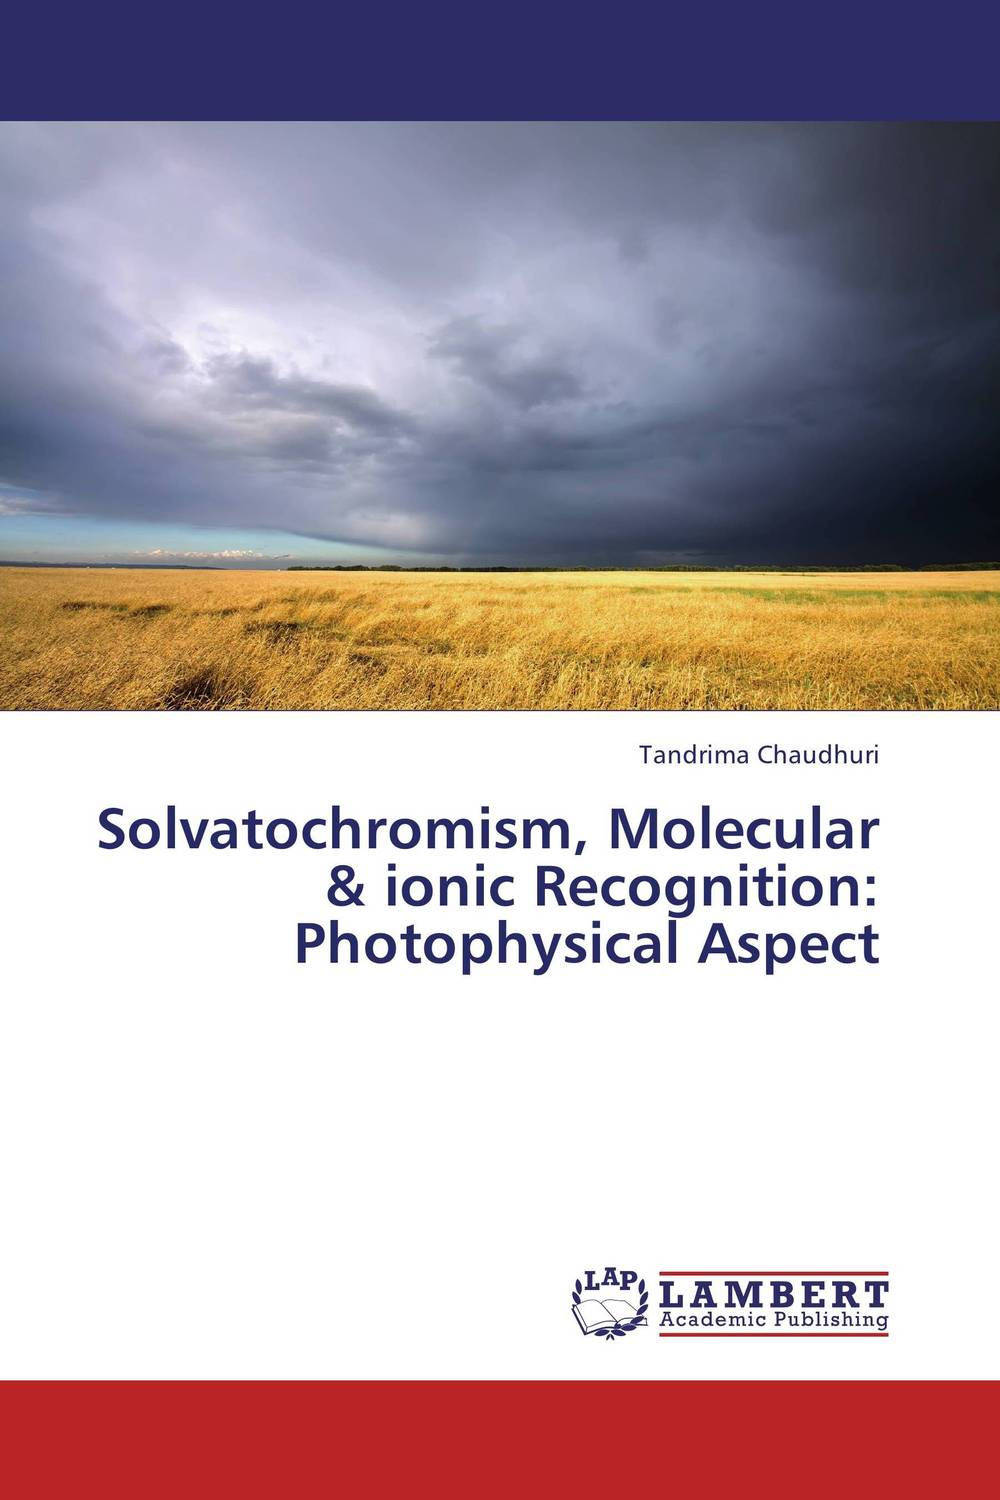 Solvatochromism, Molecular & ionic Recognition: Photophysical Aspect